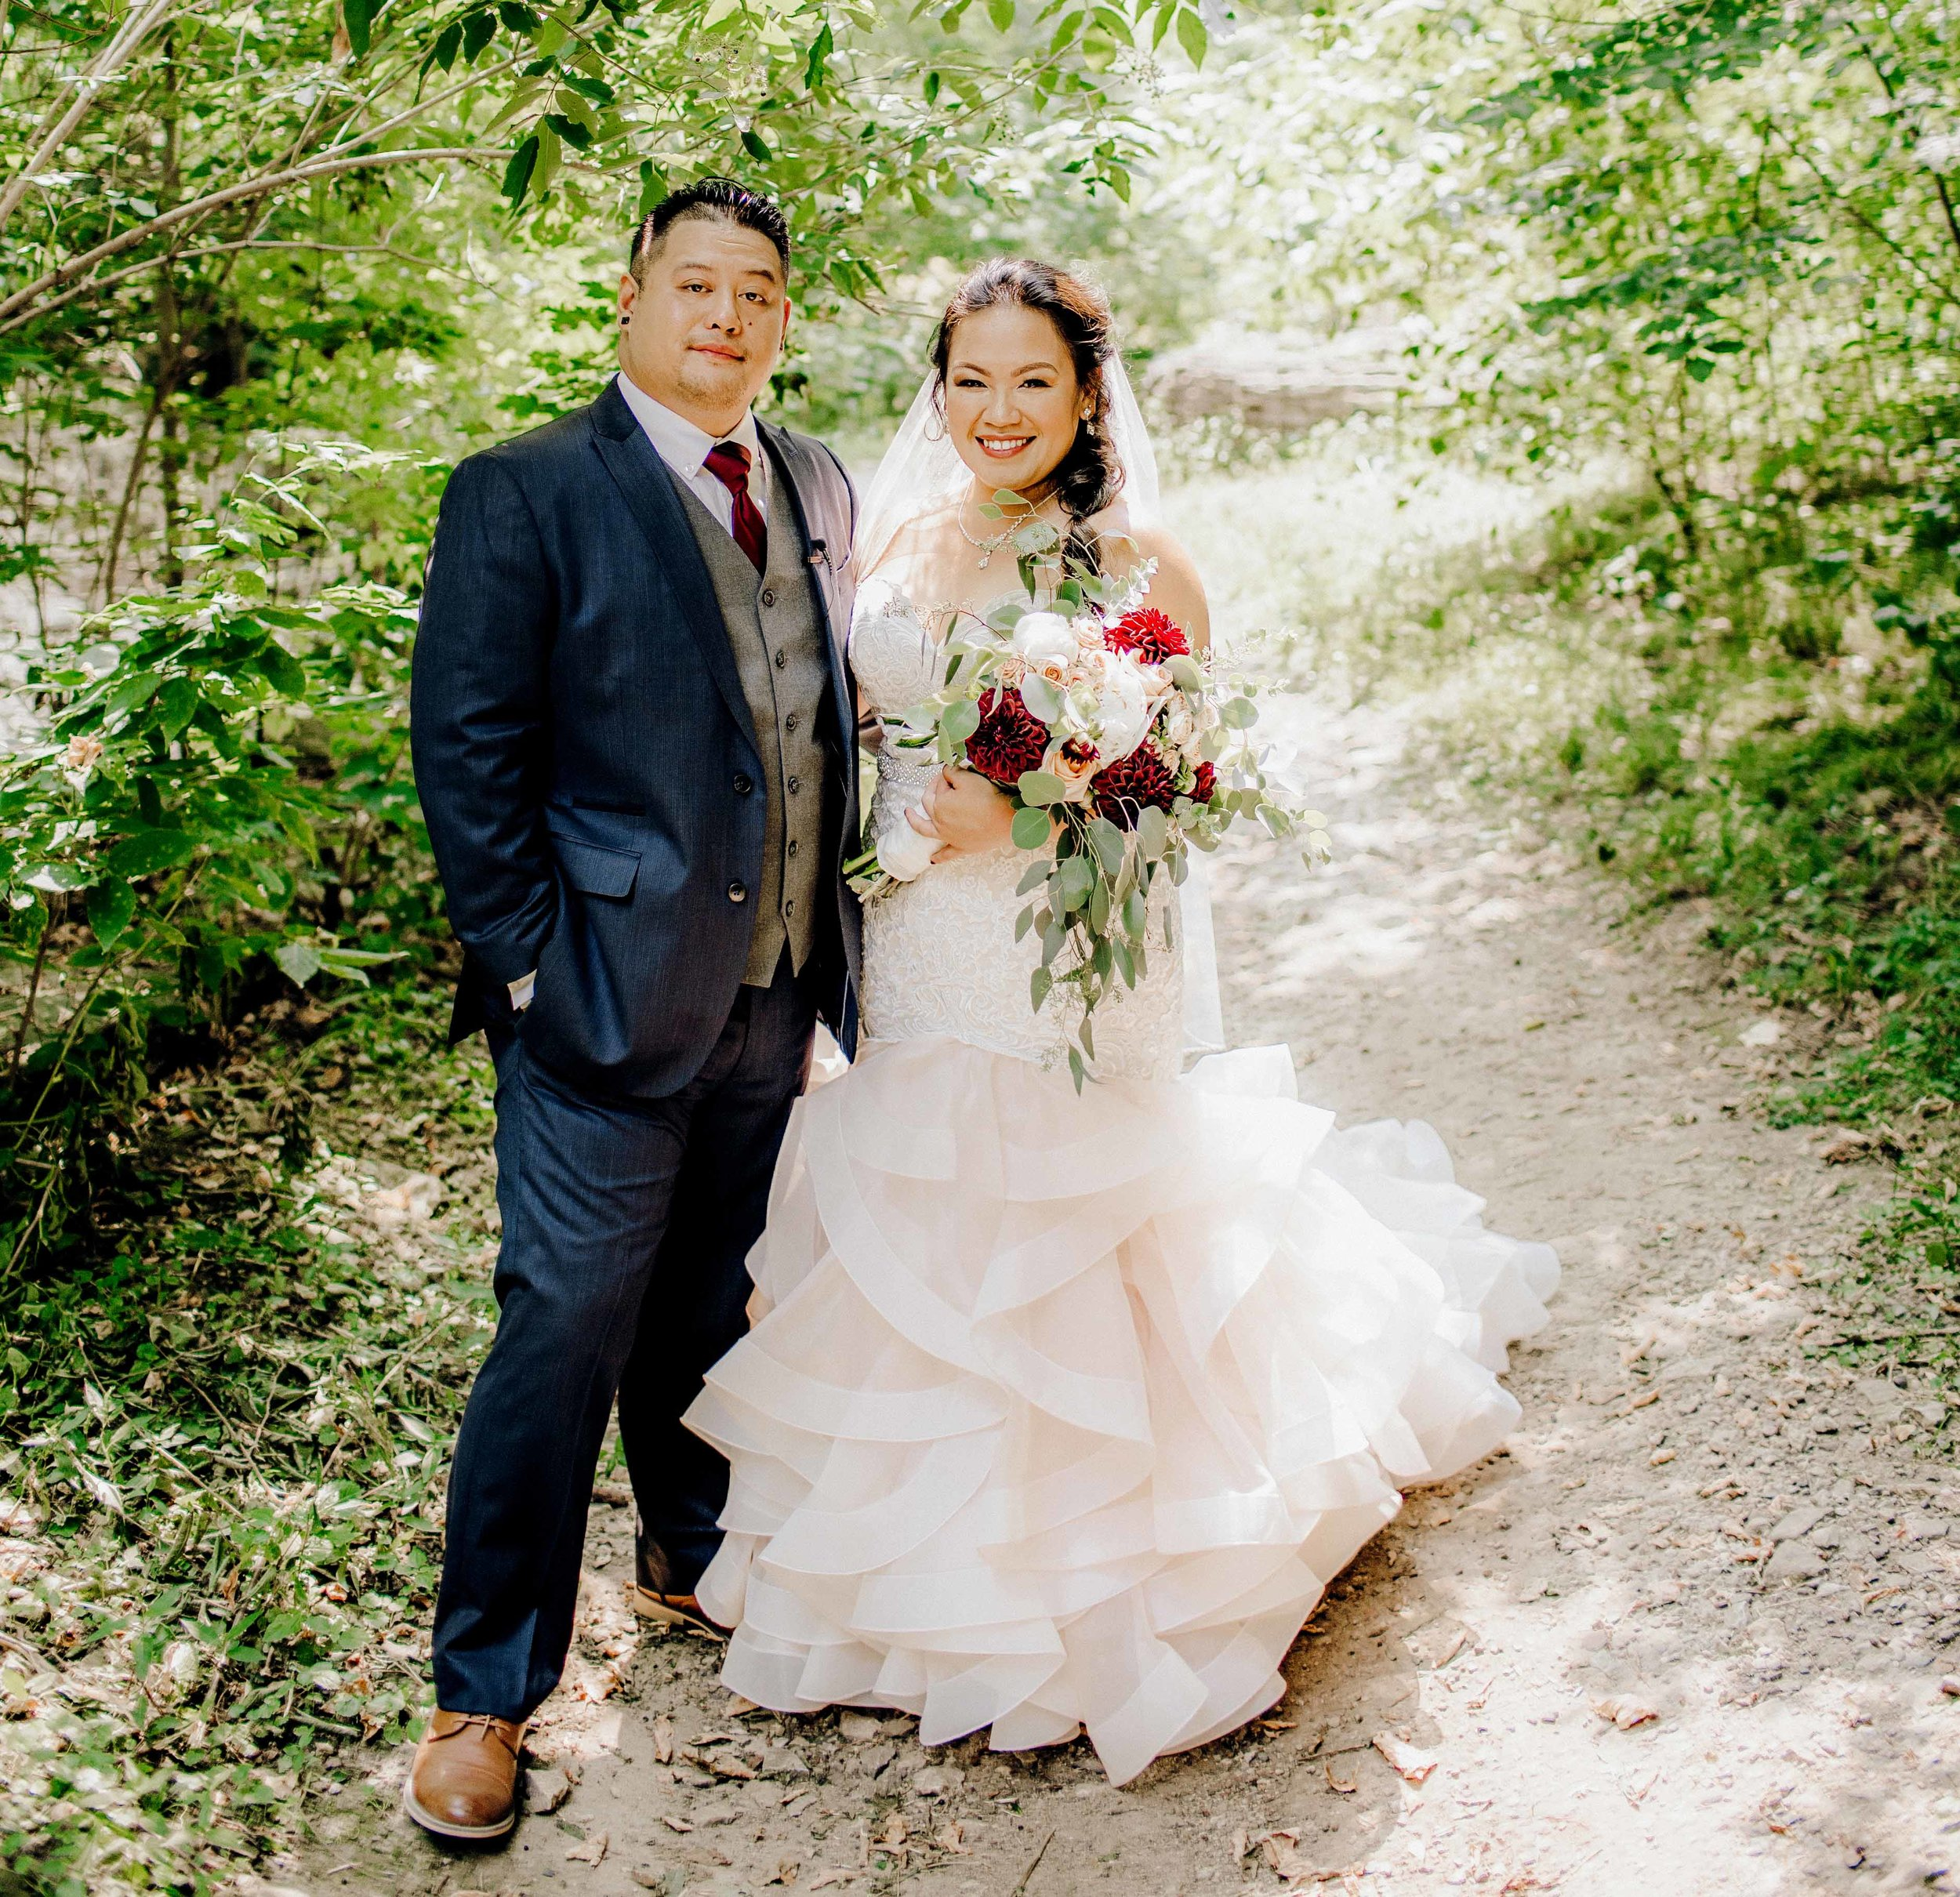 Becky + Kong, Part II, Bride, Groom, and Party-44.jpg